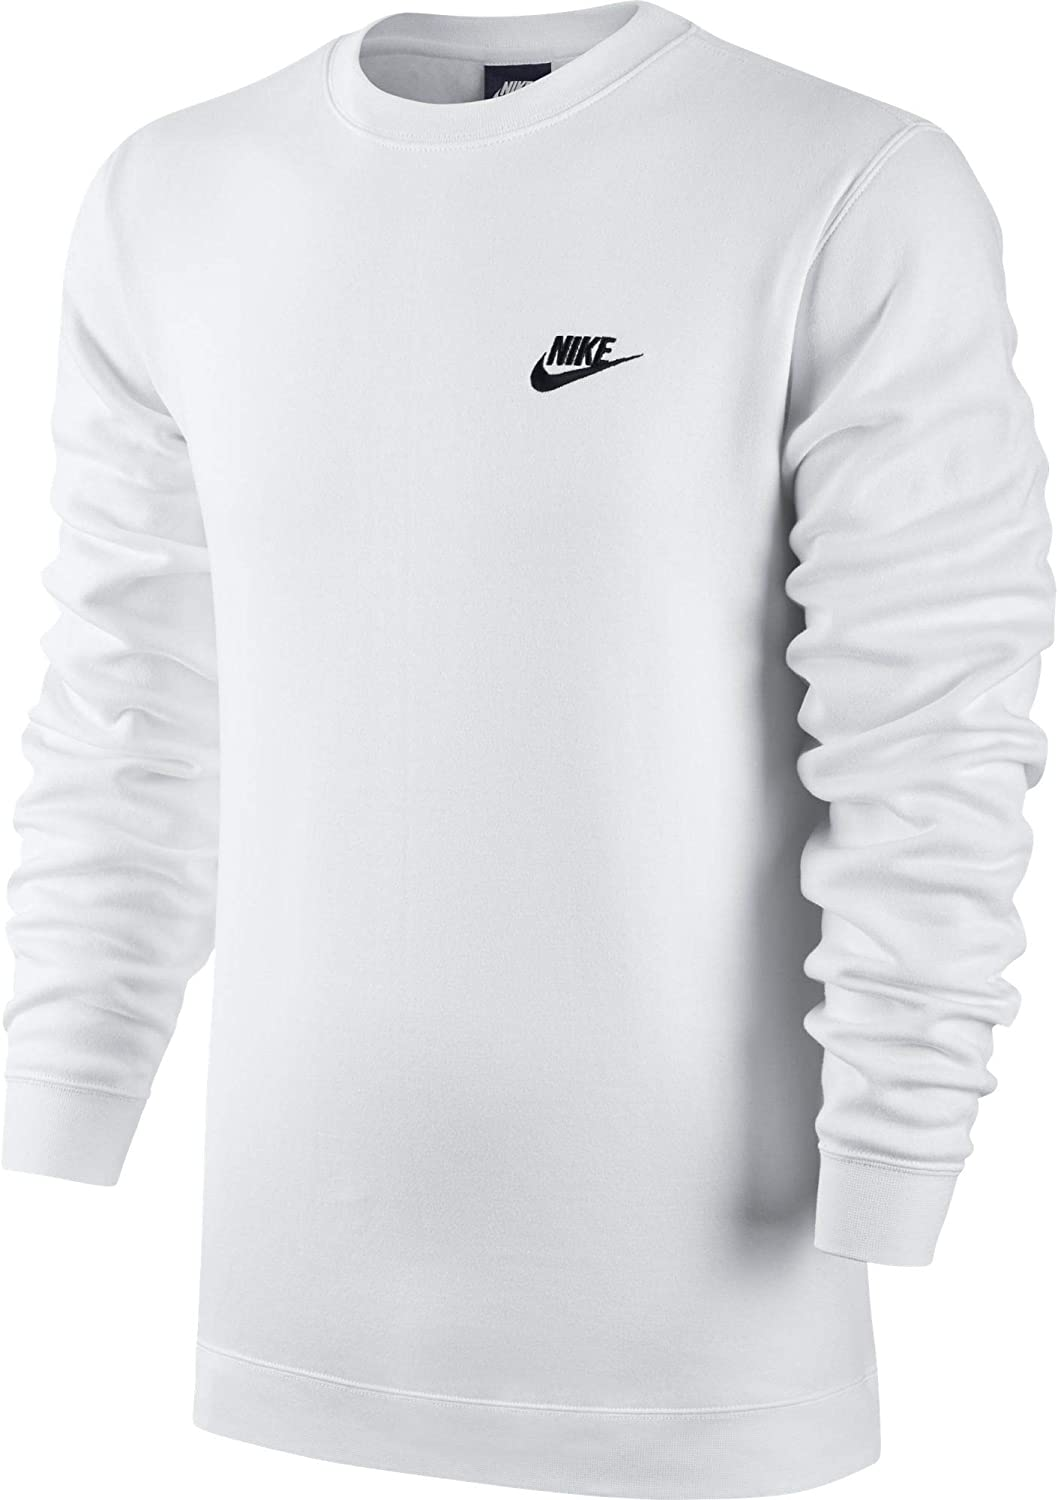 nike sweatshirts v neck